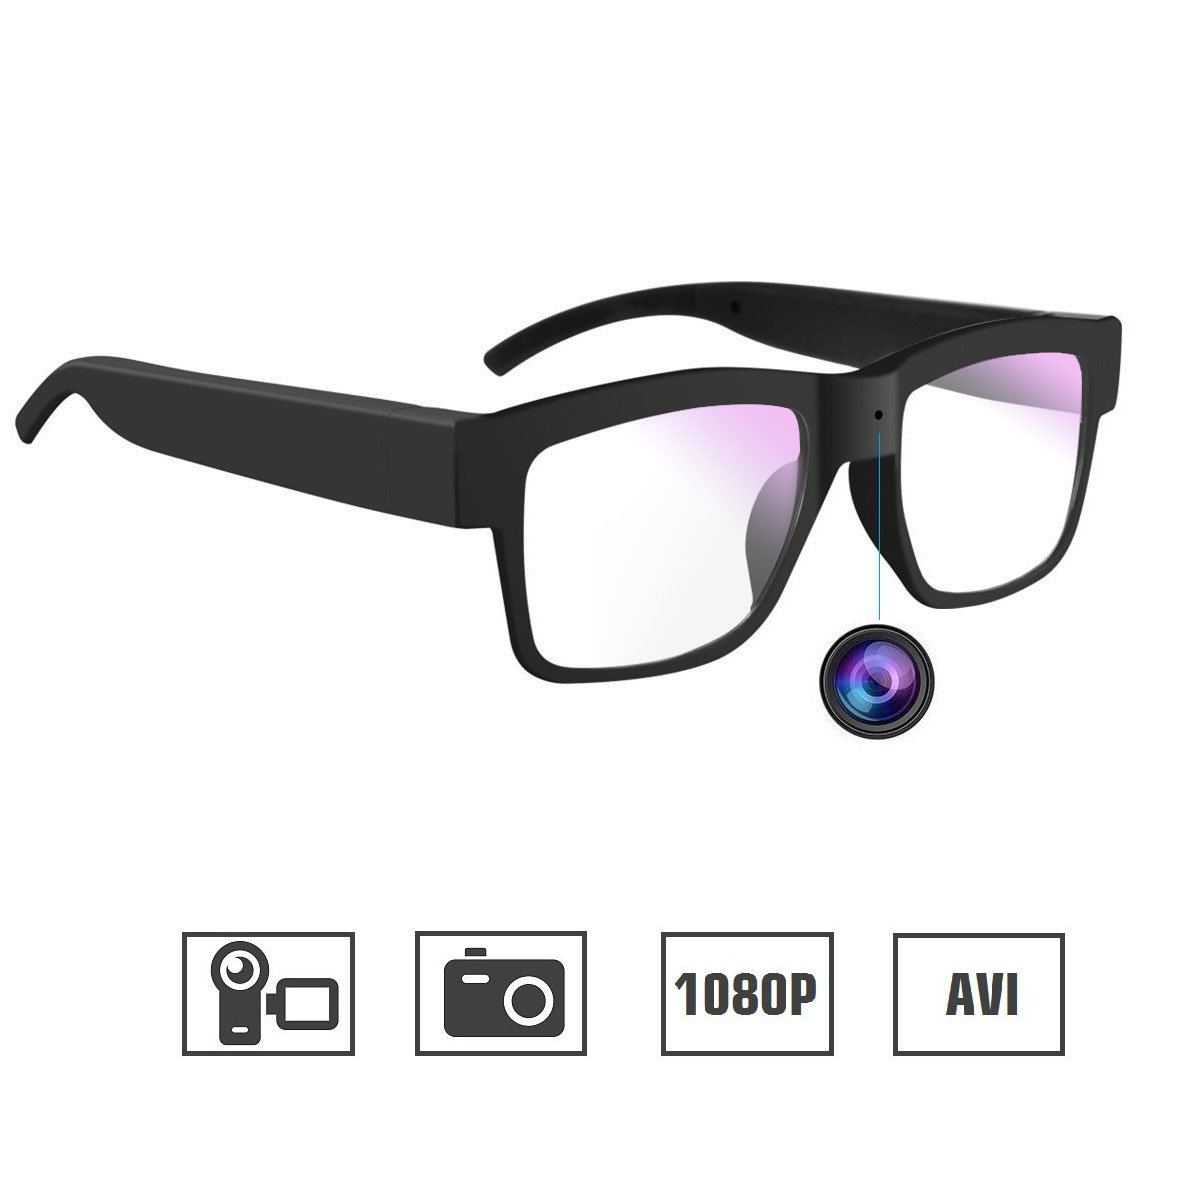 Camera Glasses 1080P Miota Mini Video Glasses Camera Wearable Camera for Office/Outdoor/Training/Teaching/Kids/Pets